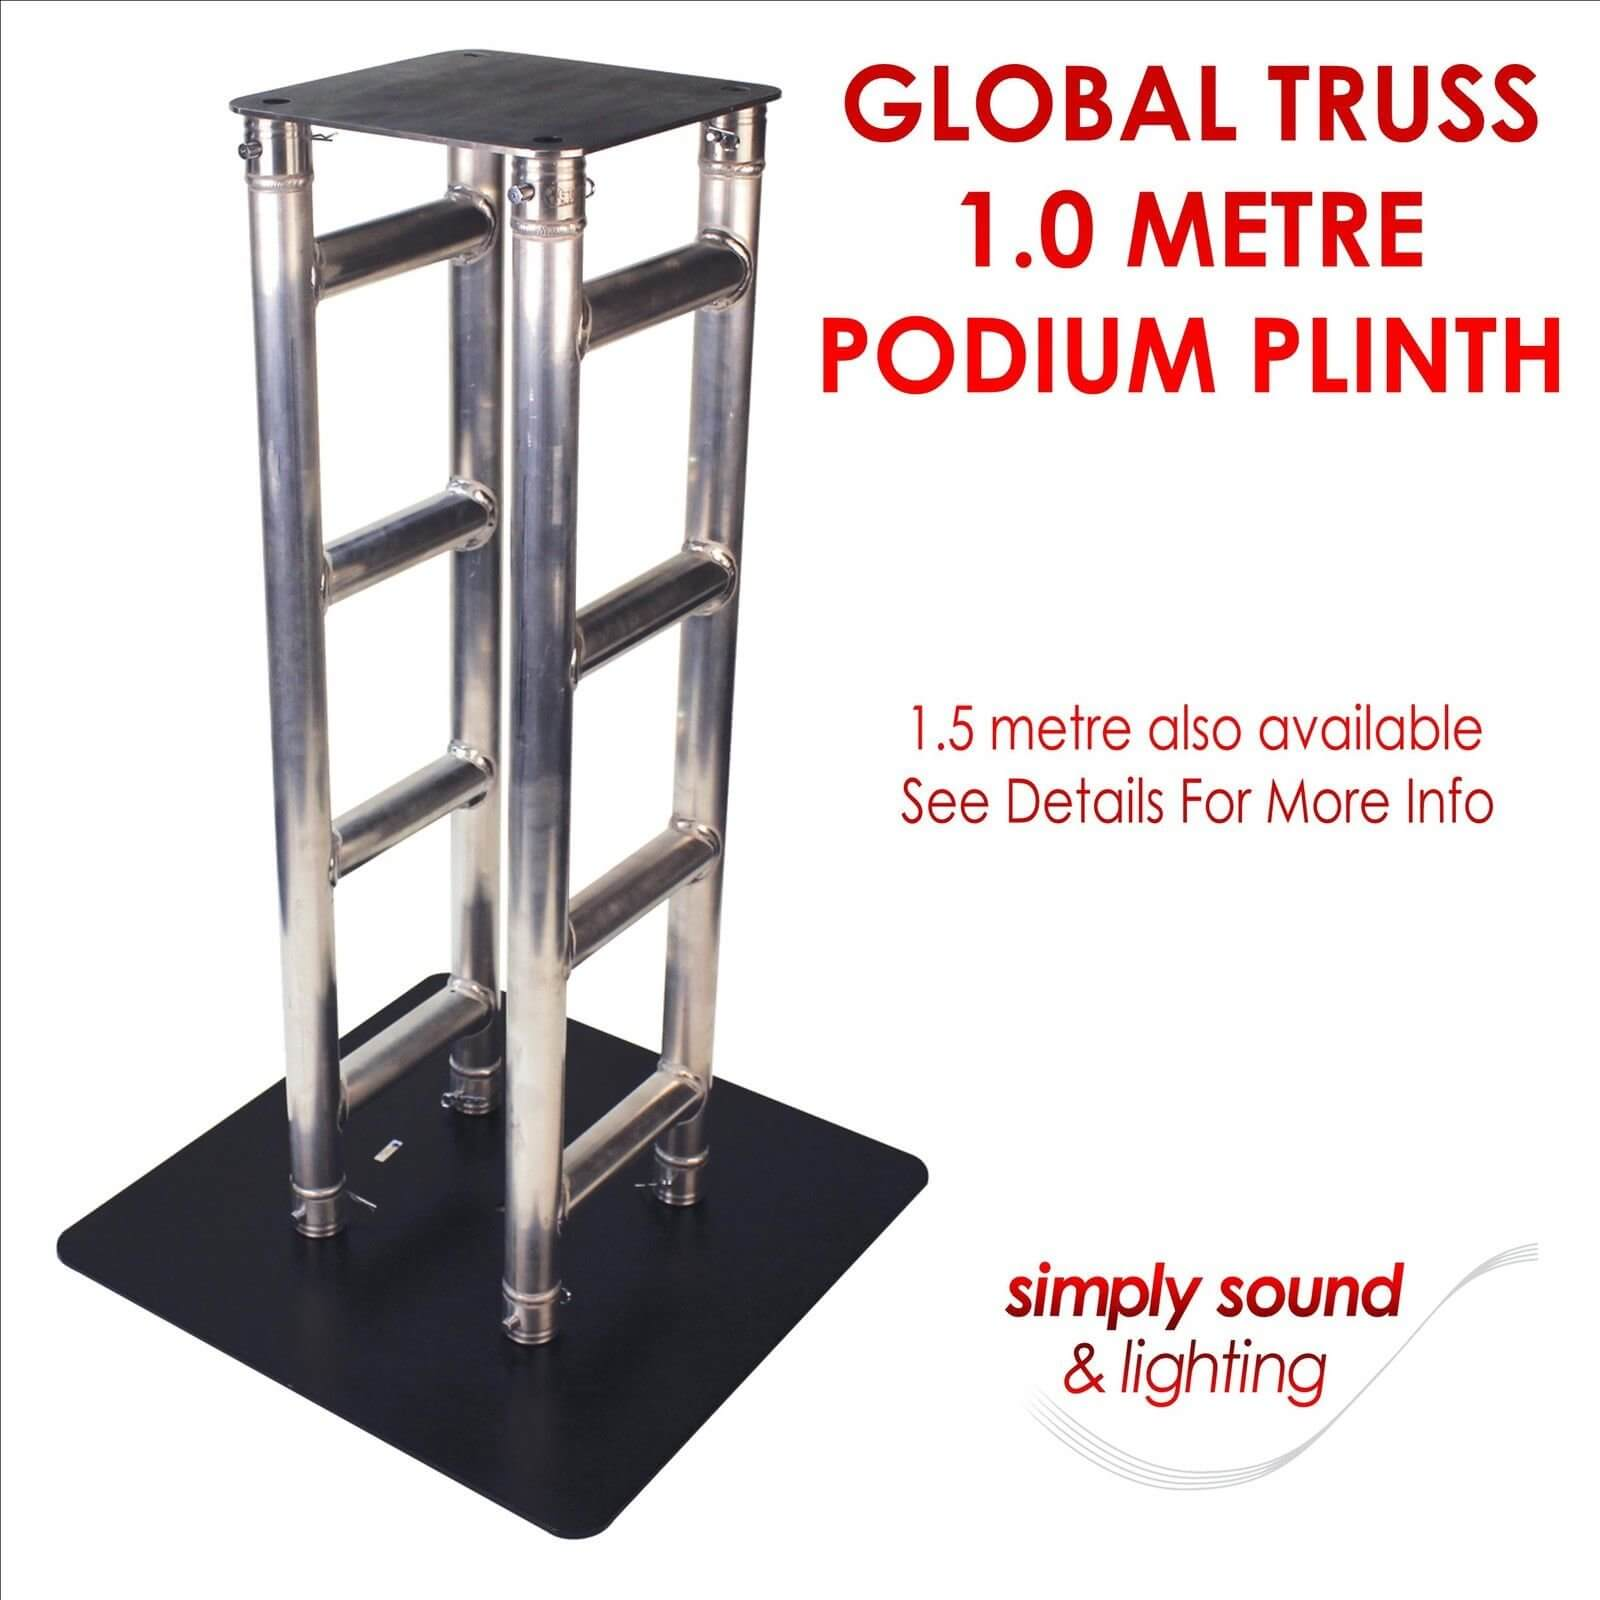 Global Truss Podium Plinth 1.0 Metre Flat Pack for Disco Lights Moving Heads etc